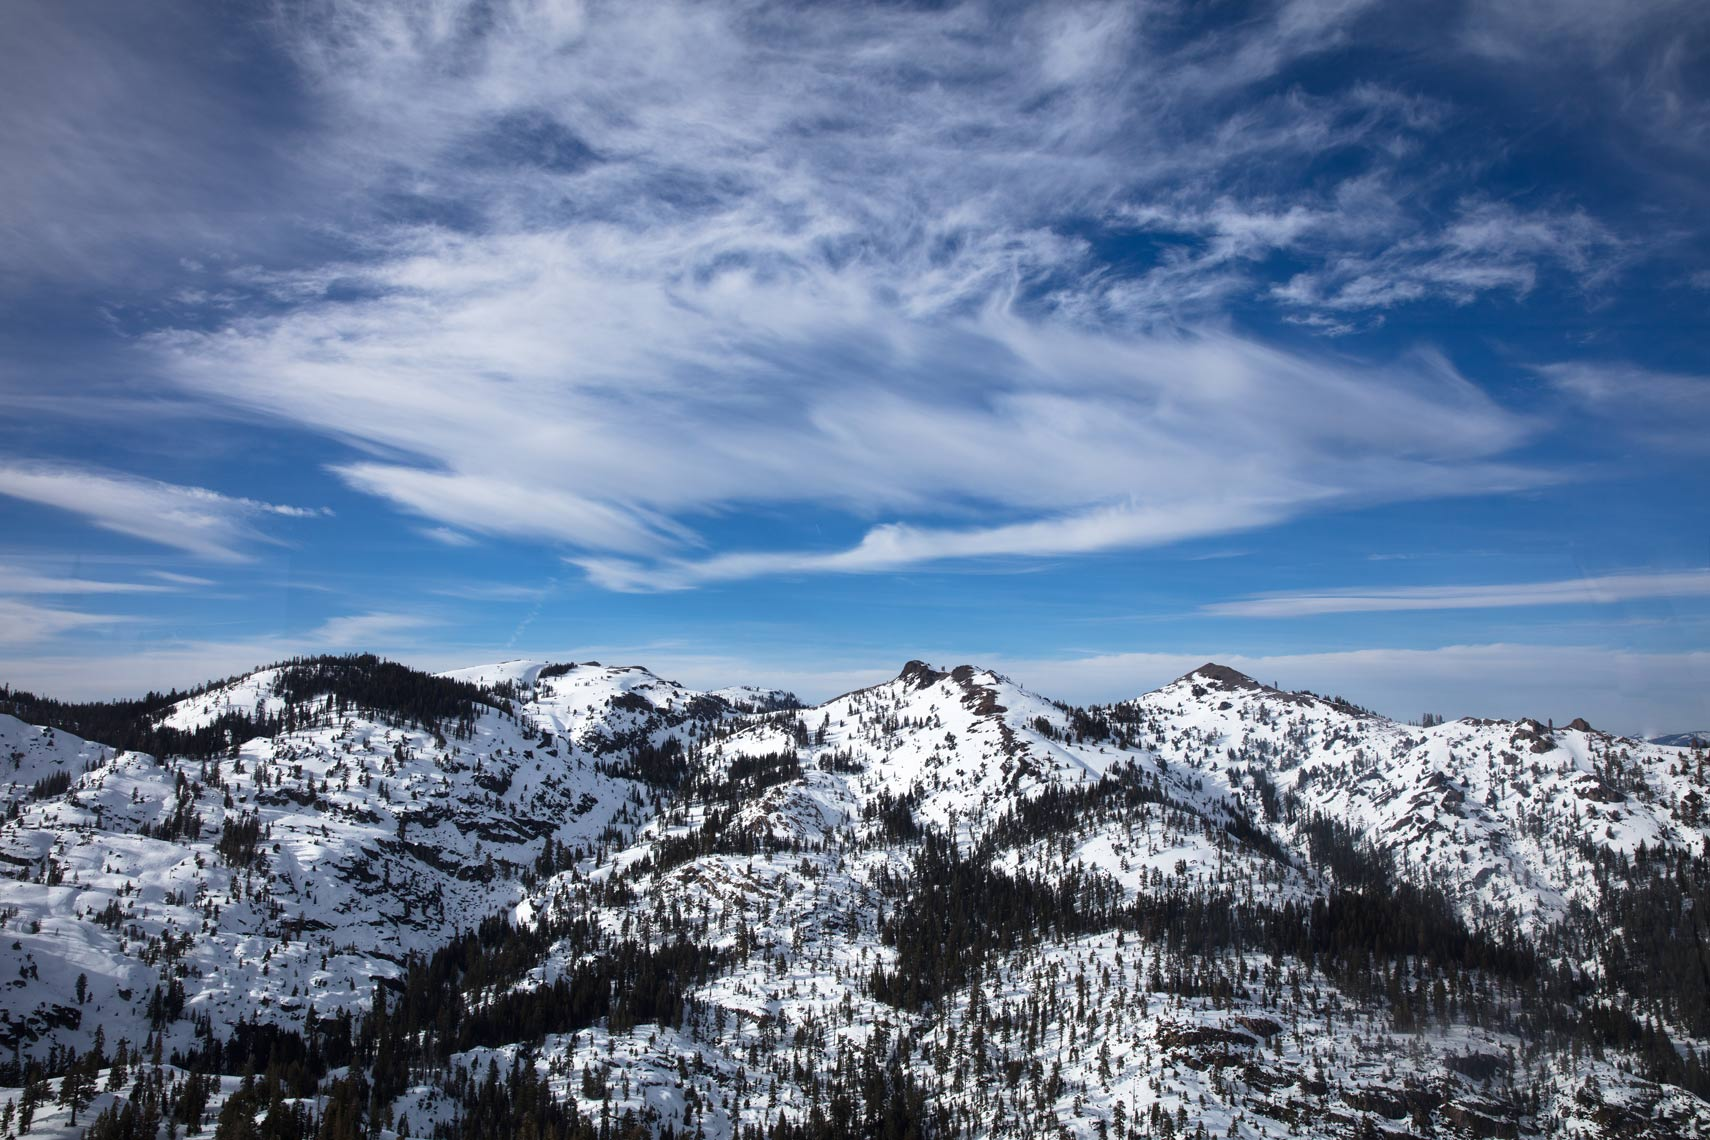 Mountains at Squaw Valley Ski Resort